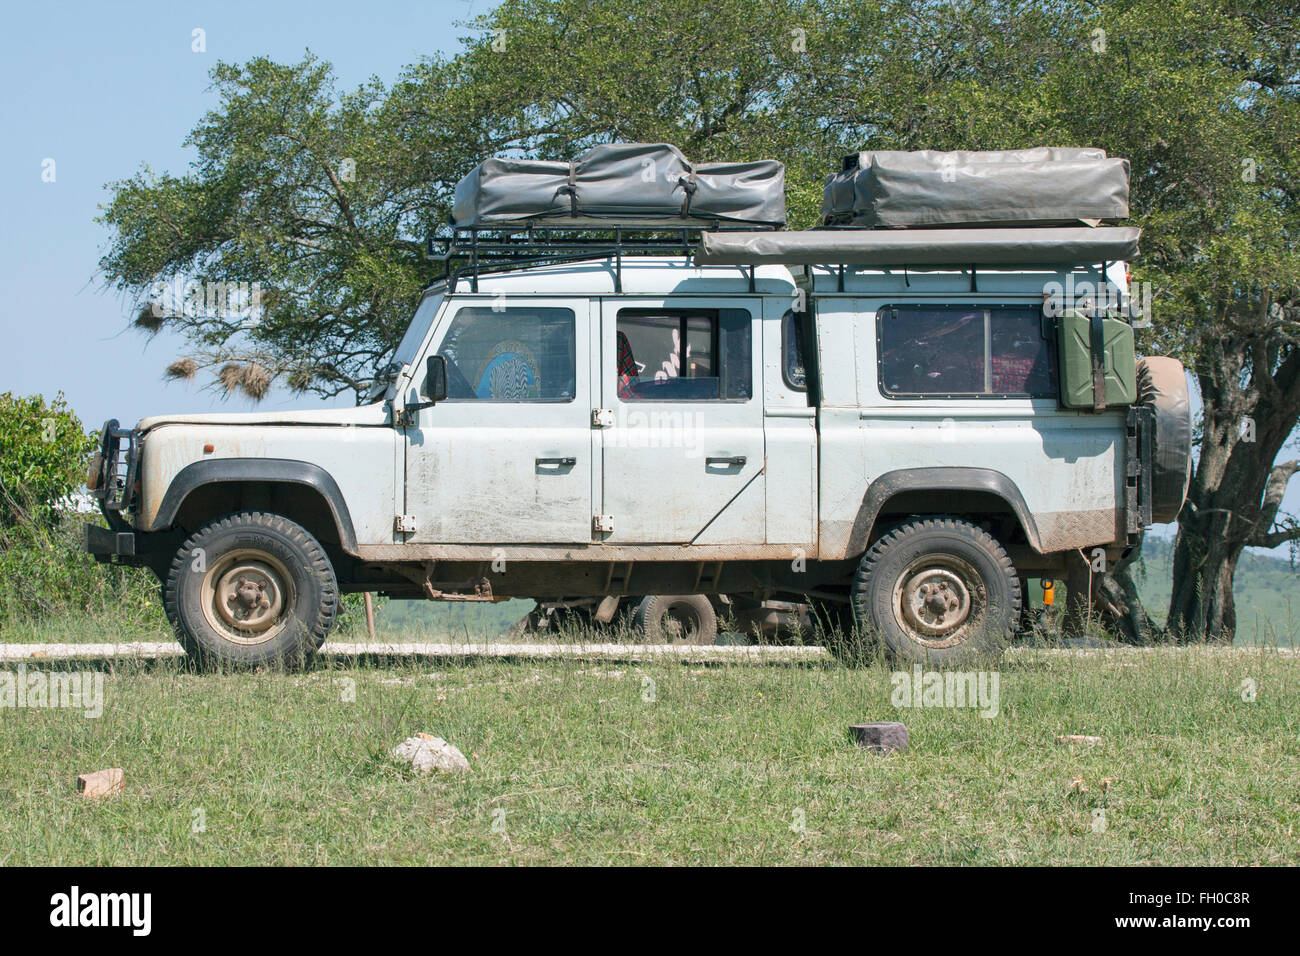 Old Land Rover Defender 110 with two roof tents Parked at roadside refreshment van Tanzania & Old Land Rover Defender 110 with two roof tents Parked at roadside ...